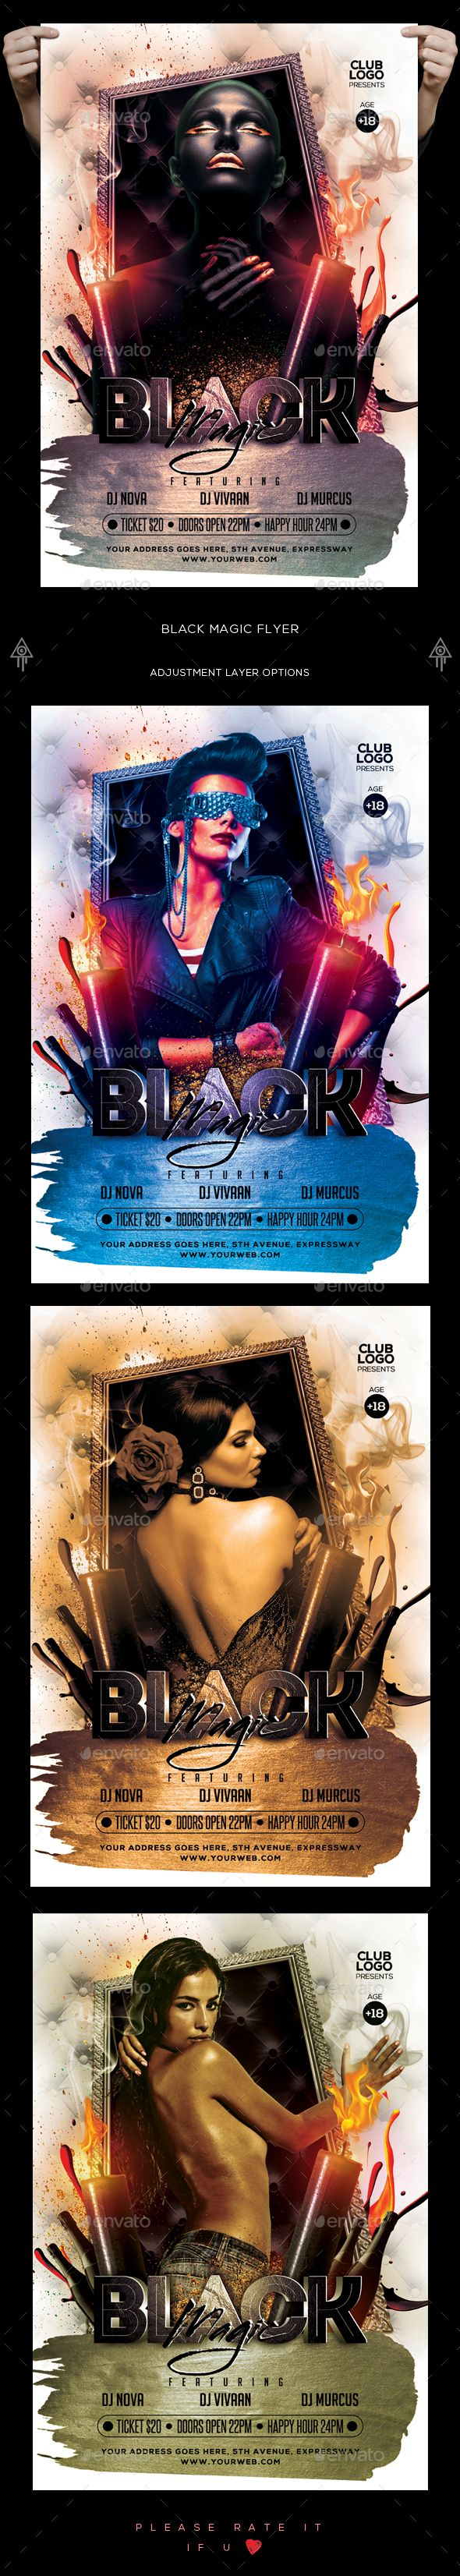 Black Magic Flyer Template PSD